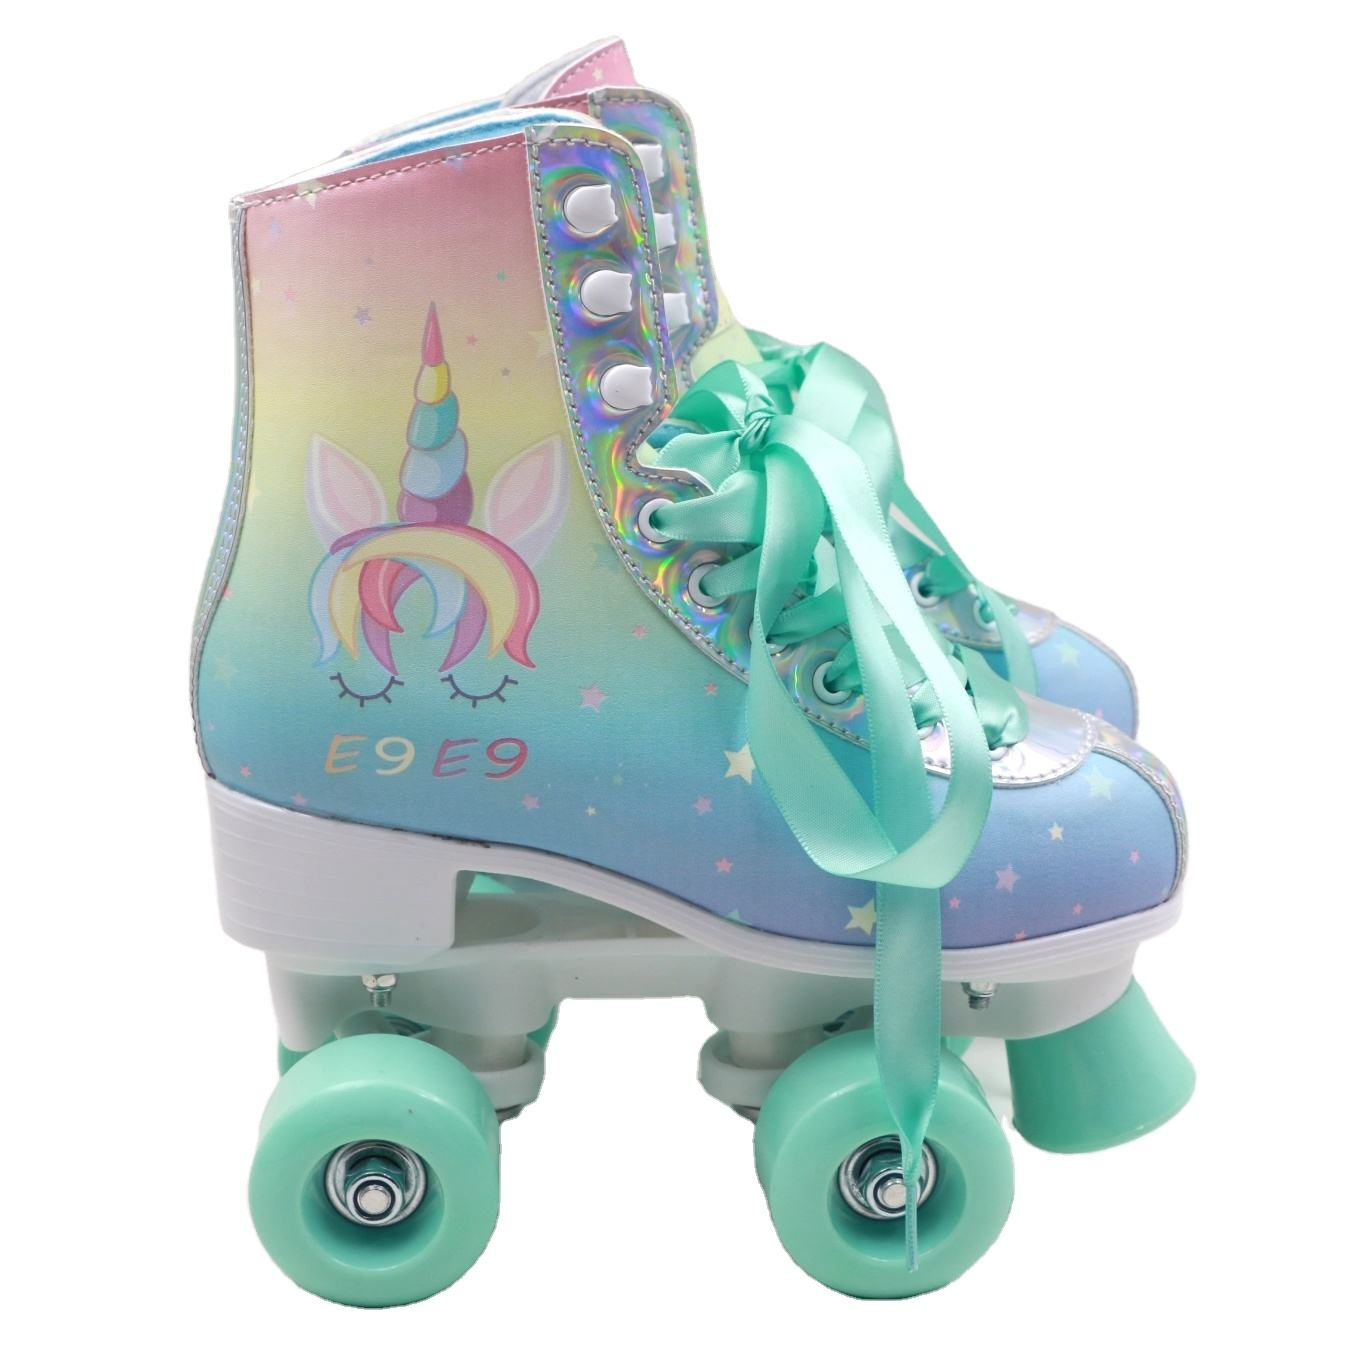 Factory wholesale cheap machine print pattern JR-708 quad kids skate double pvc wheel roller skate shoes